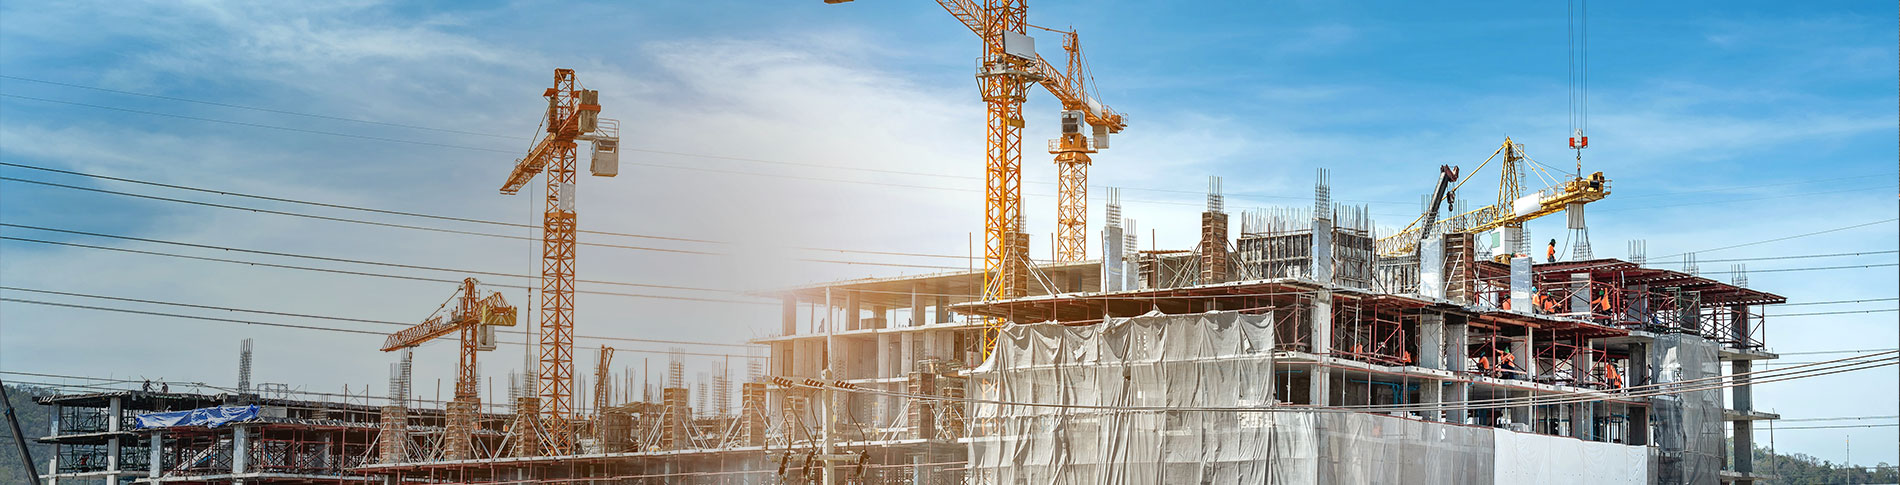 IoT FOR REDUCING RISKS IN CONSTRUCTION SITES